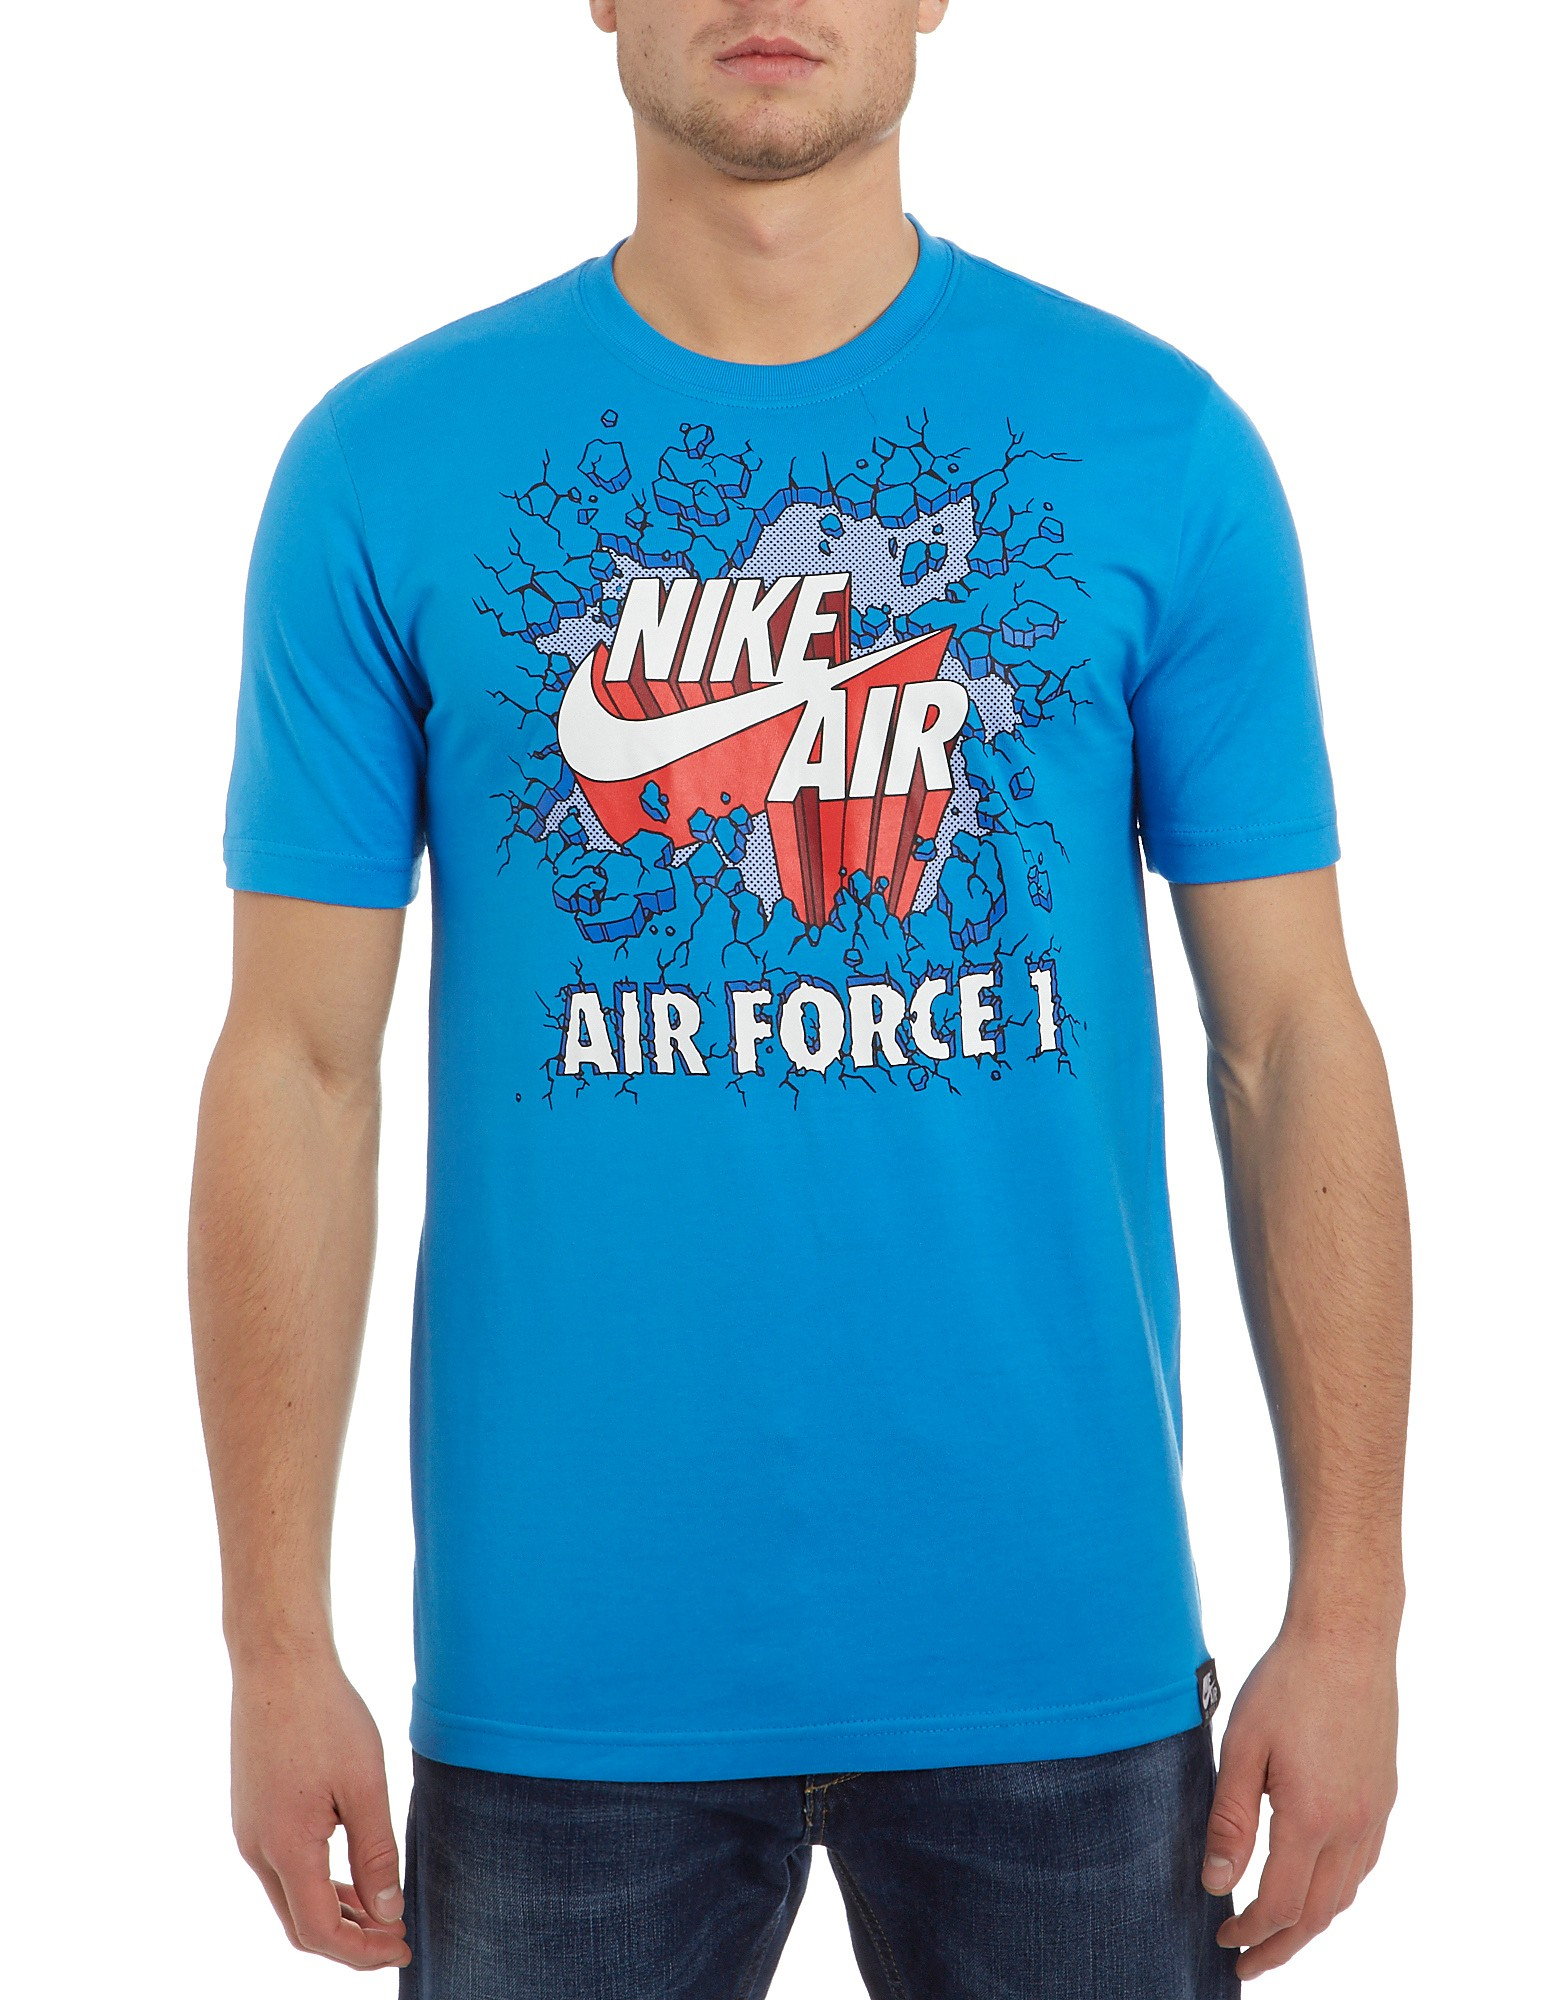 Nike Air Force 1 Hulk T-Shirt product image